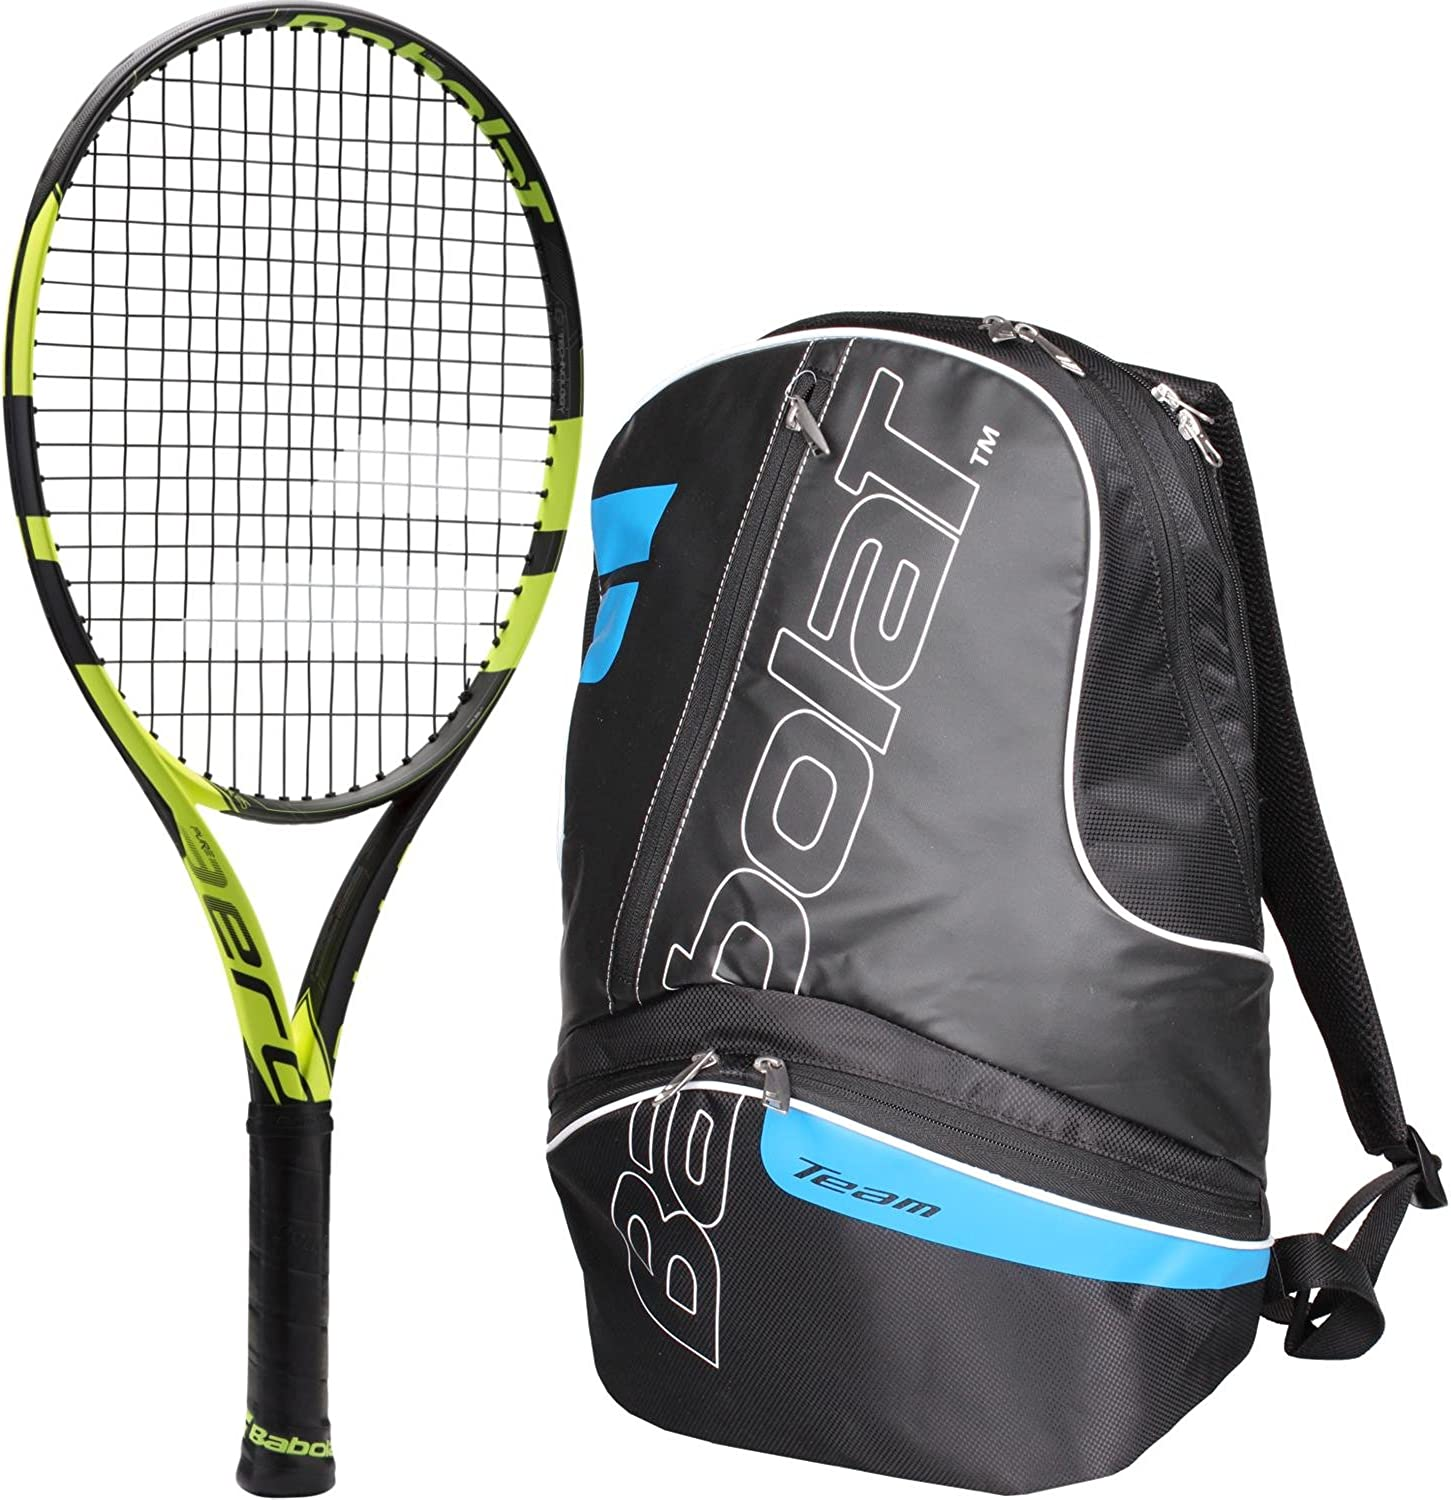 Babolat Pure Aero 25 Inch Junior Tennis Racquet (Black Yellow) bundled with a blueee Black Team Tennis Backpack